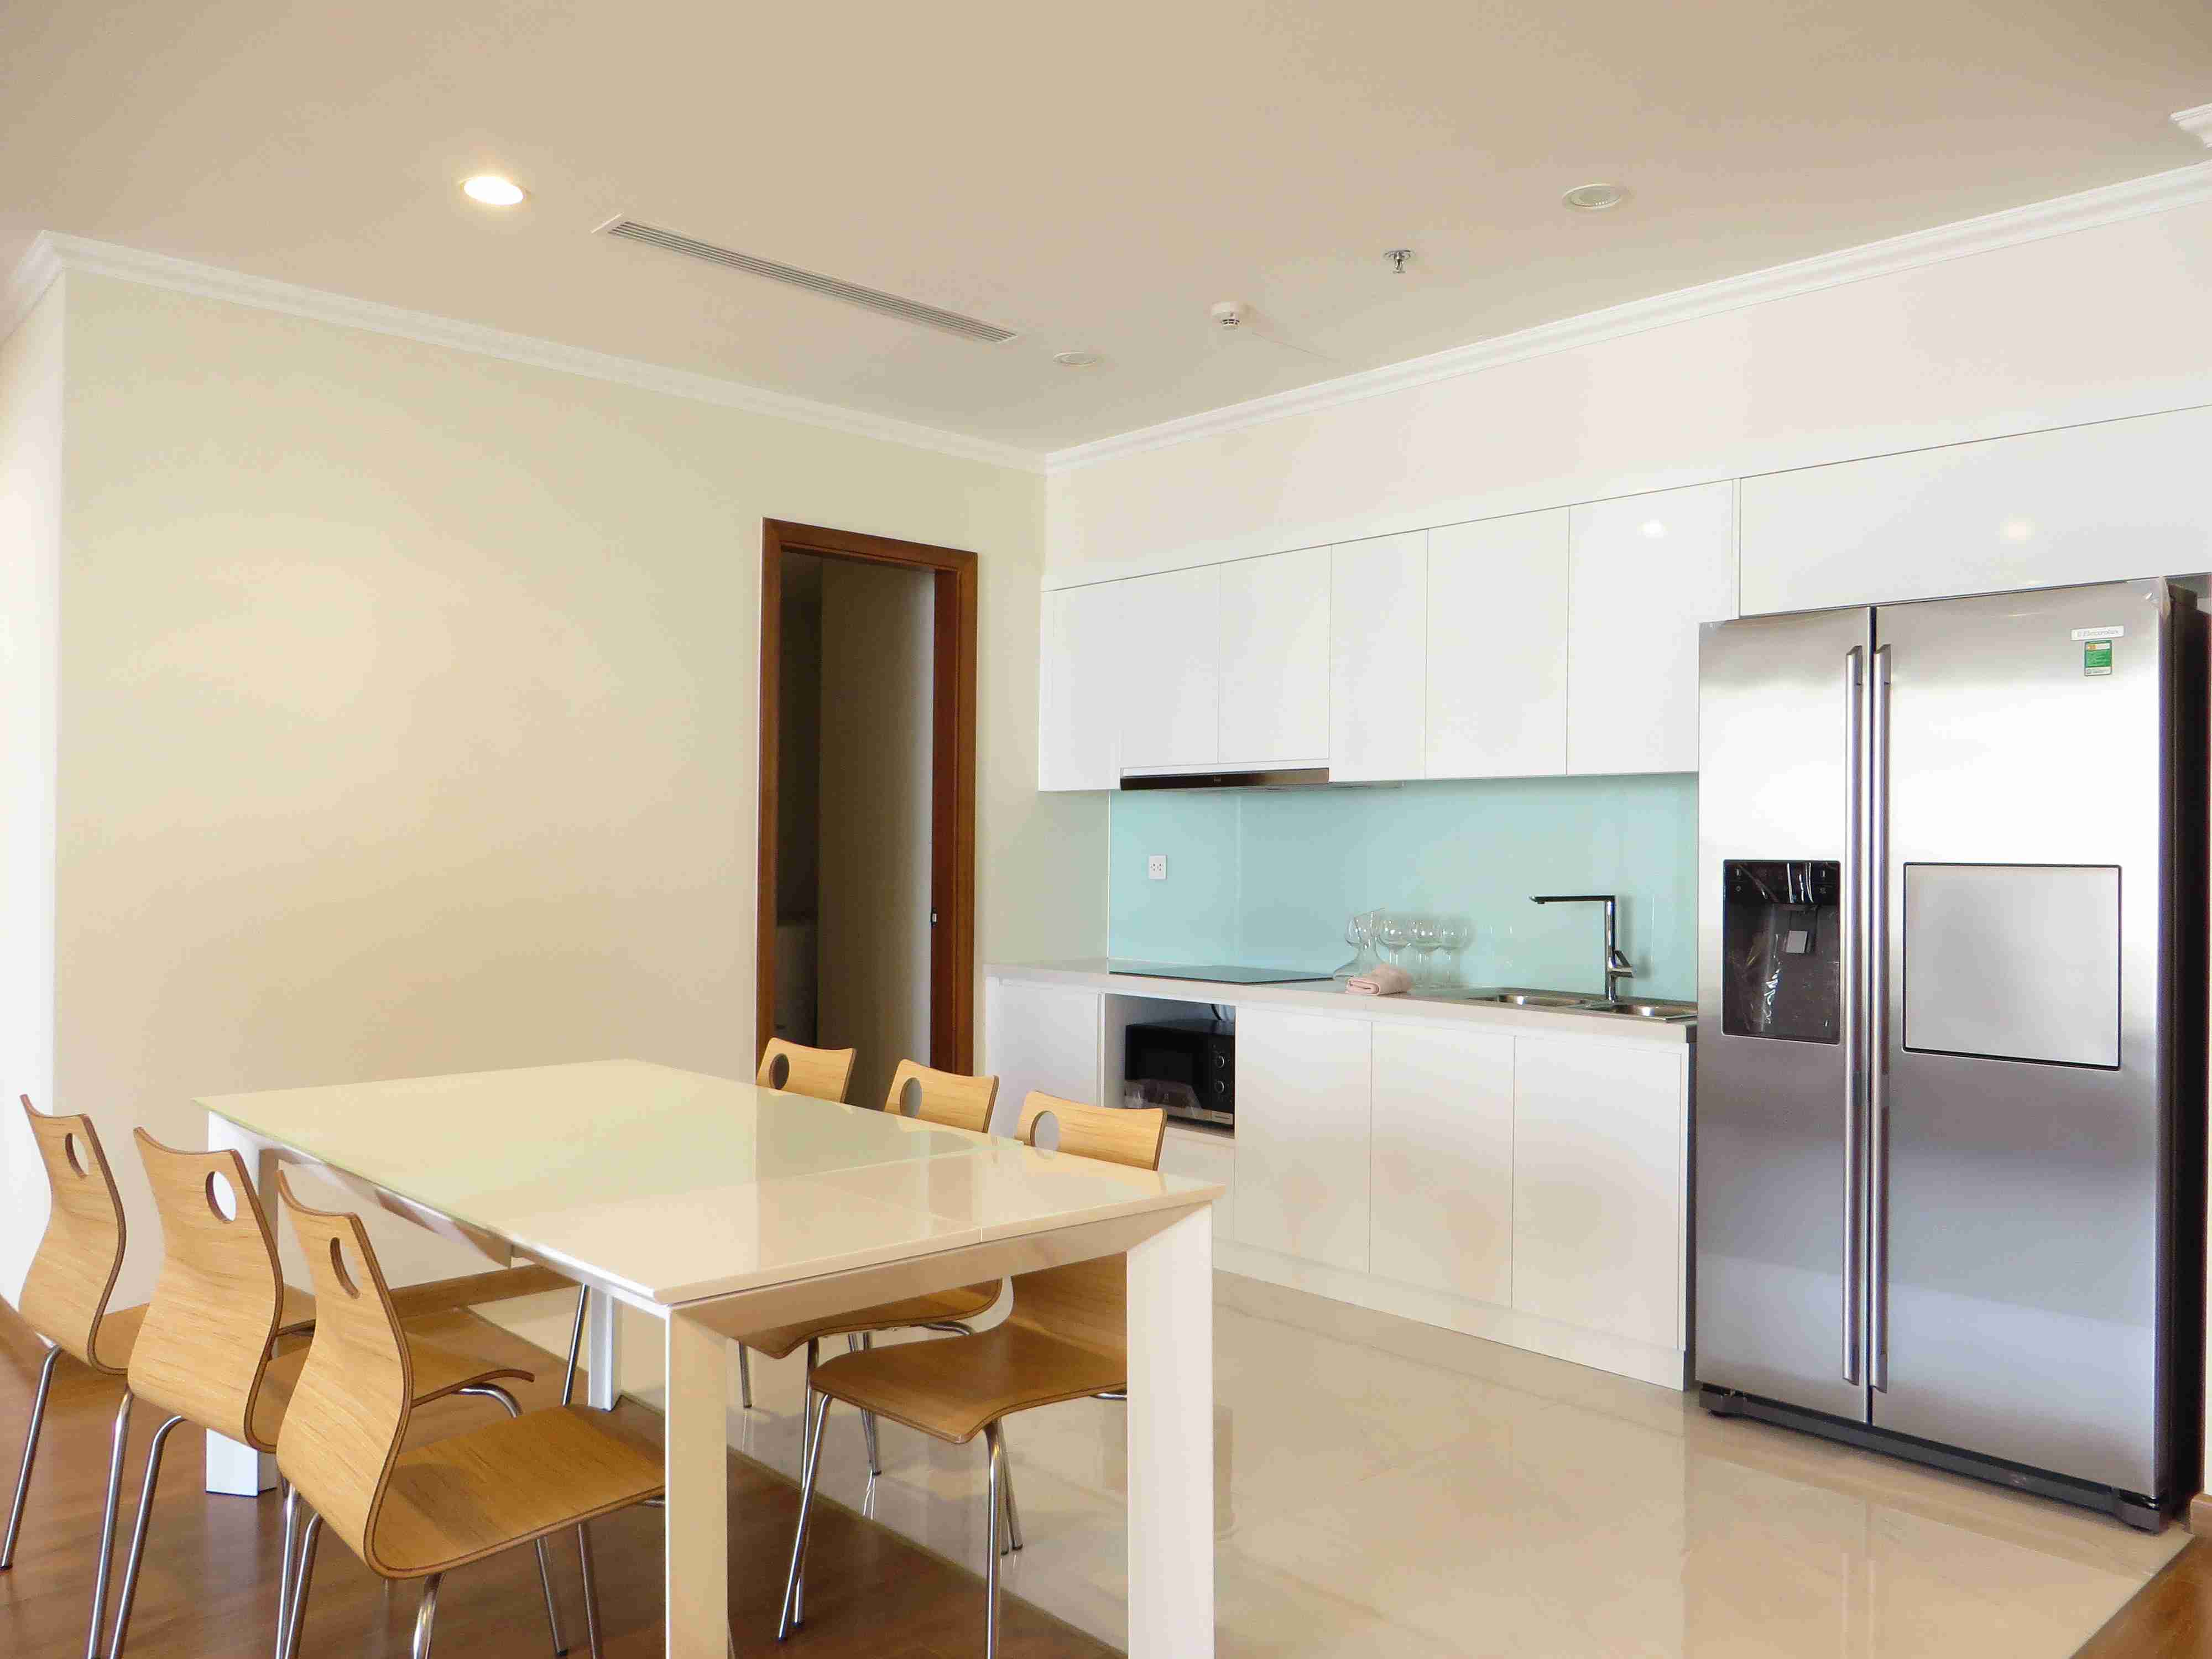 3 bedroom apartment for rent in Vinhomes Nguyen Chi Thanh